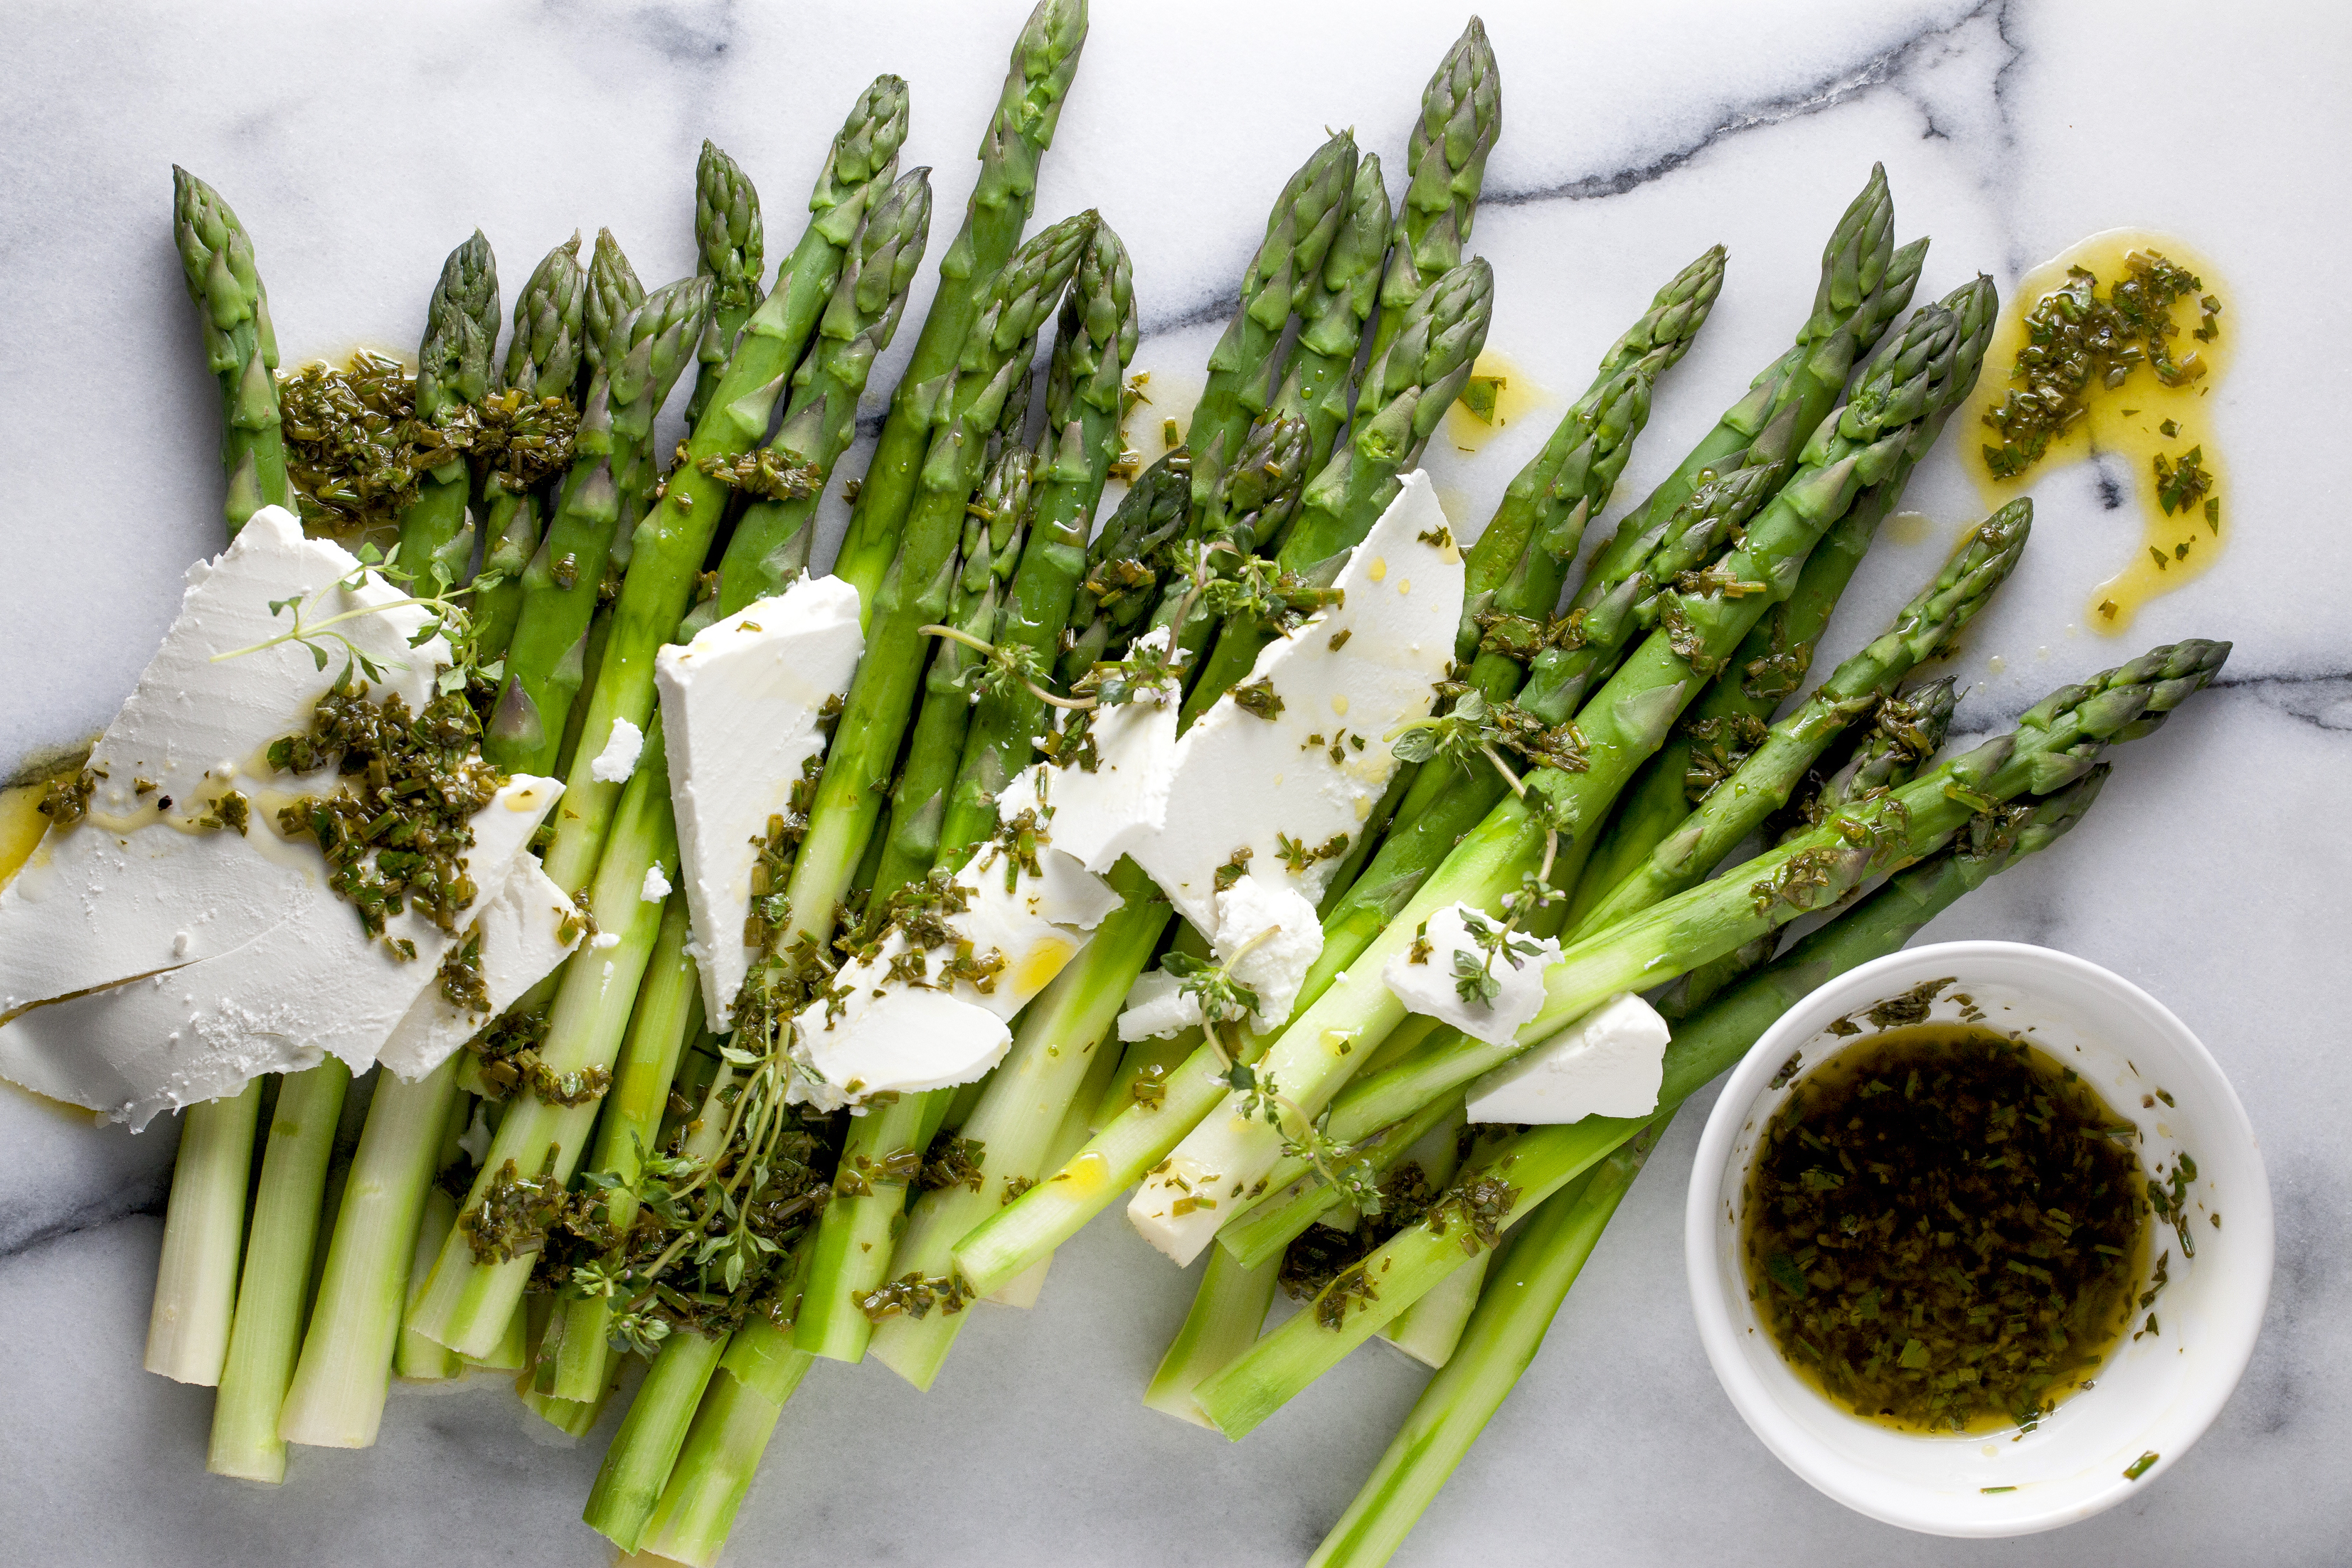 Asparagus salad recipe by Teresa Cutter of The Healthy Chef.